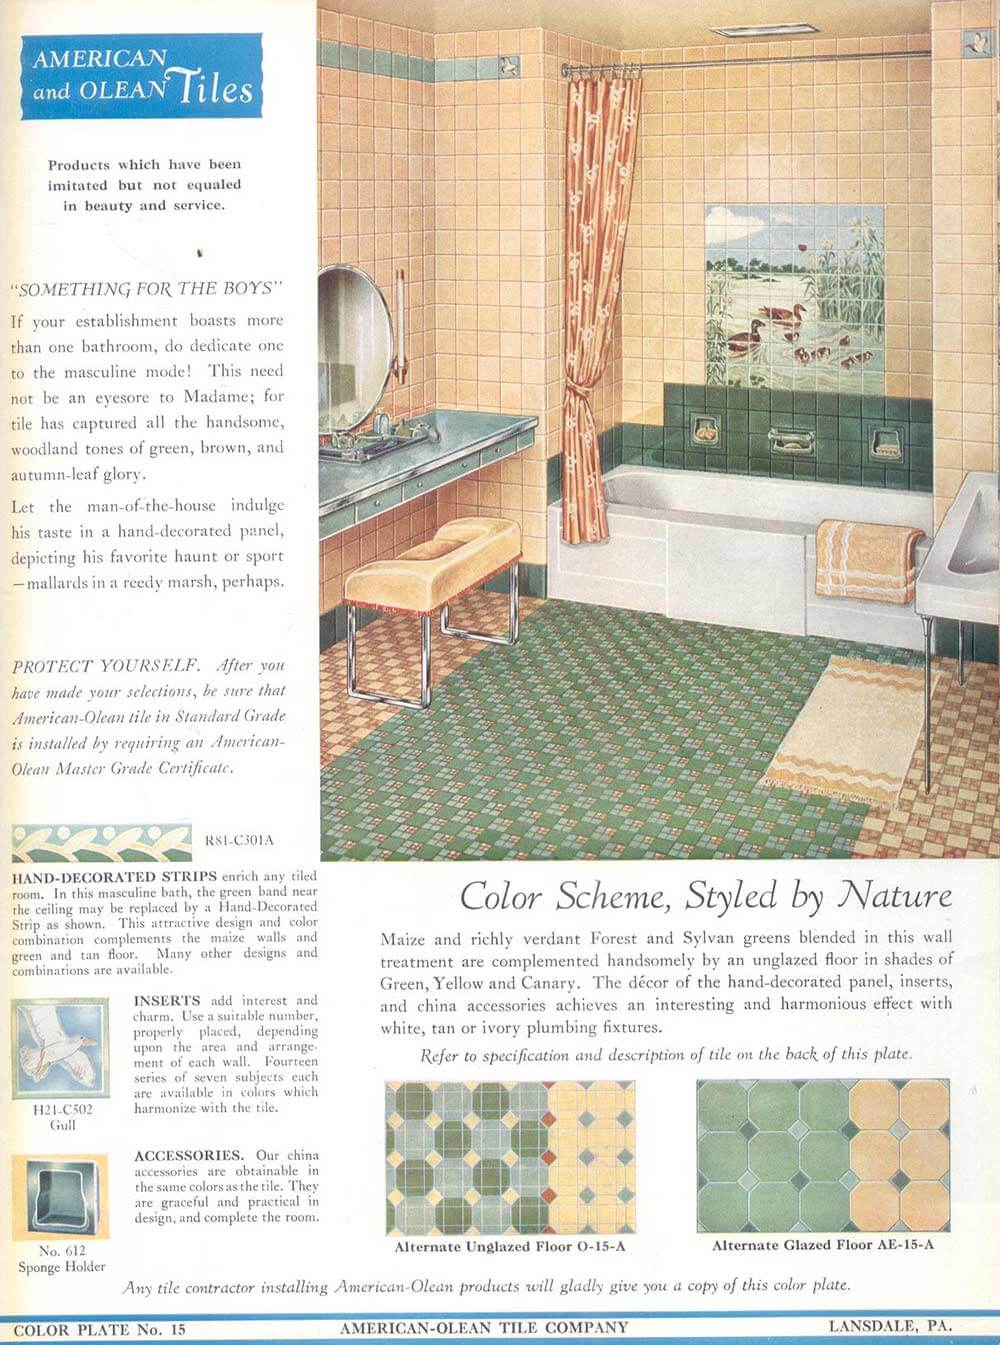 American-Olean-tile-bathroom-illustration